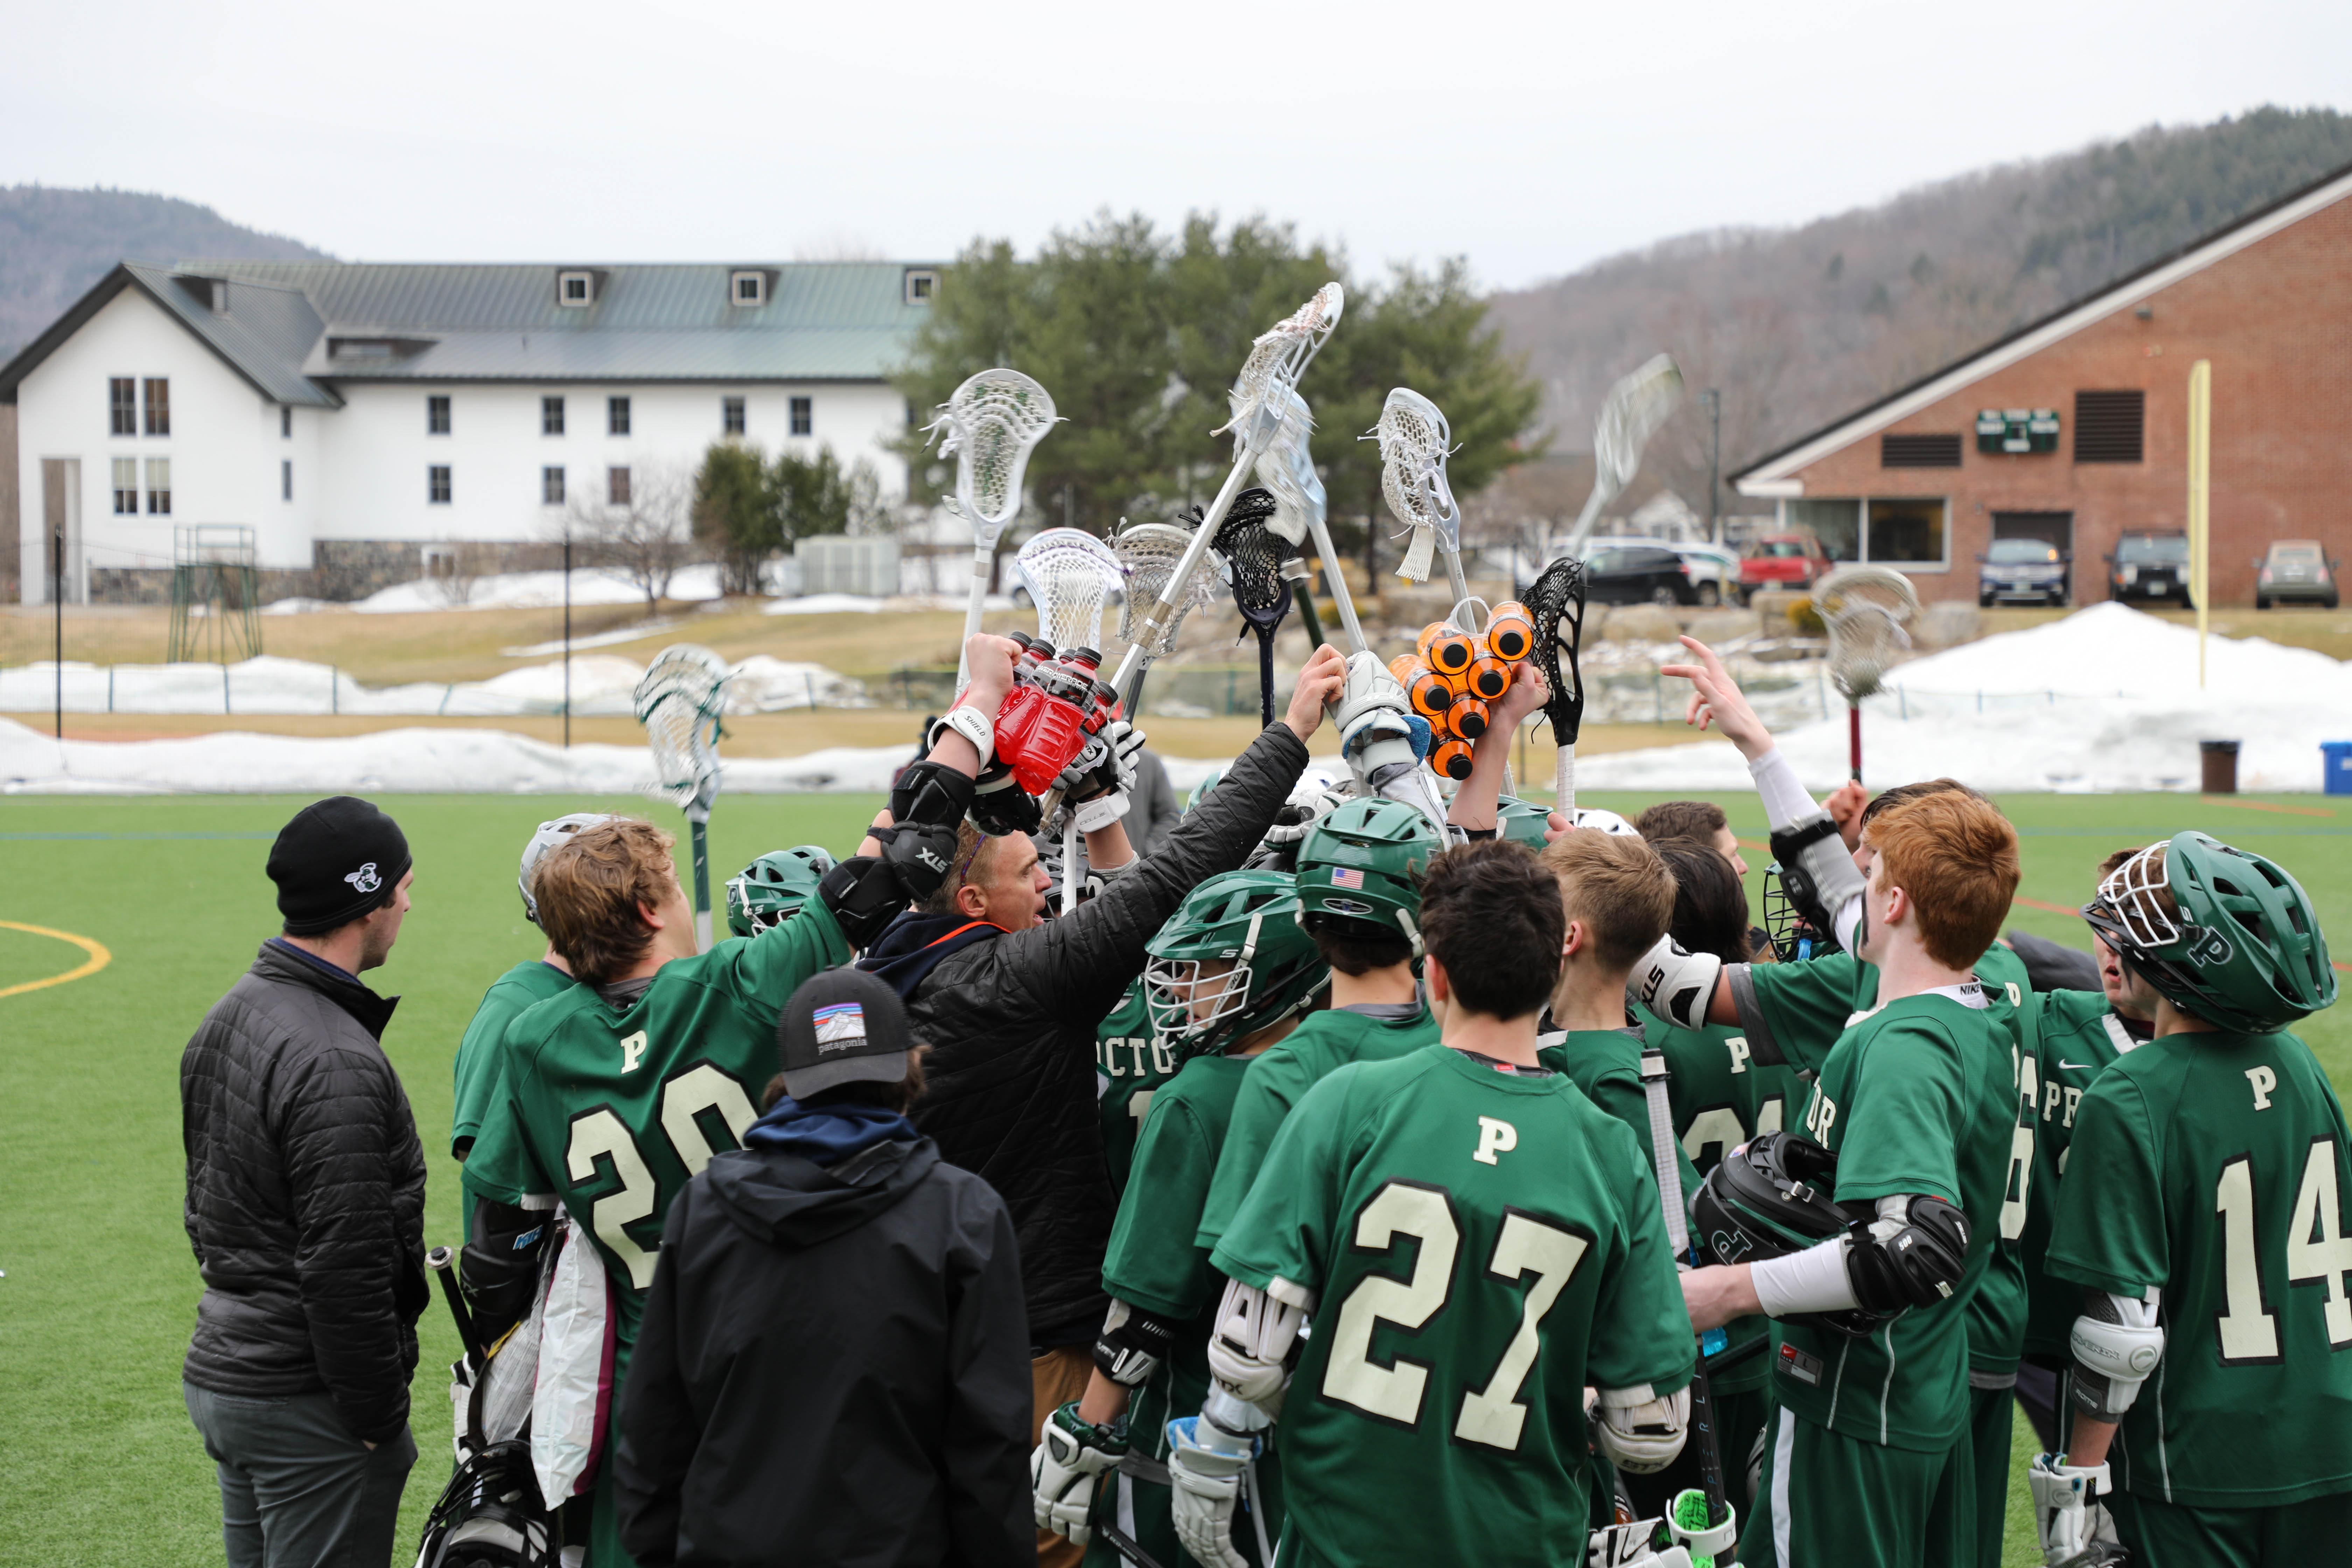 Proctor Academy Boarding School New England Athletics